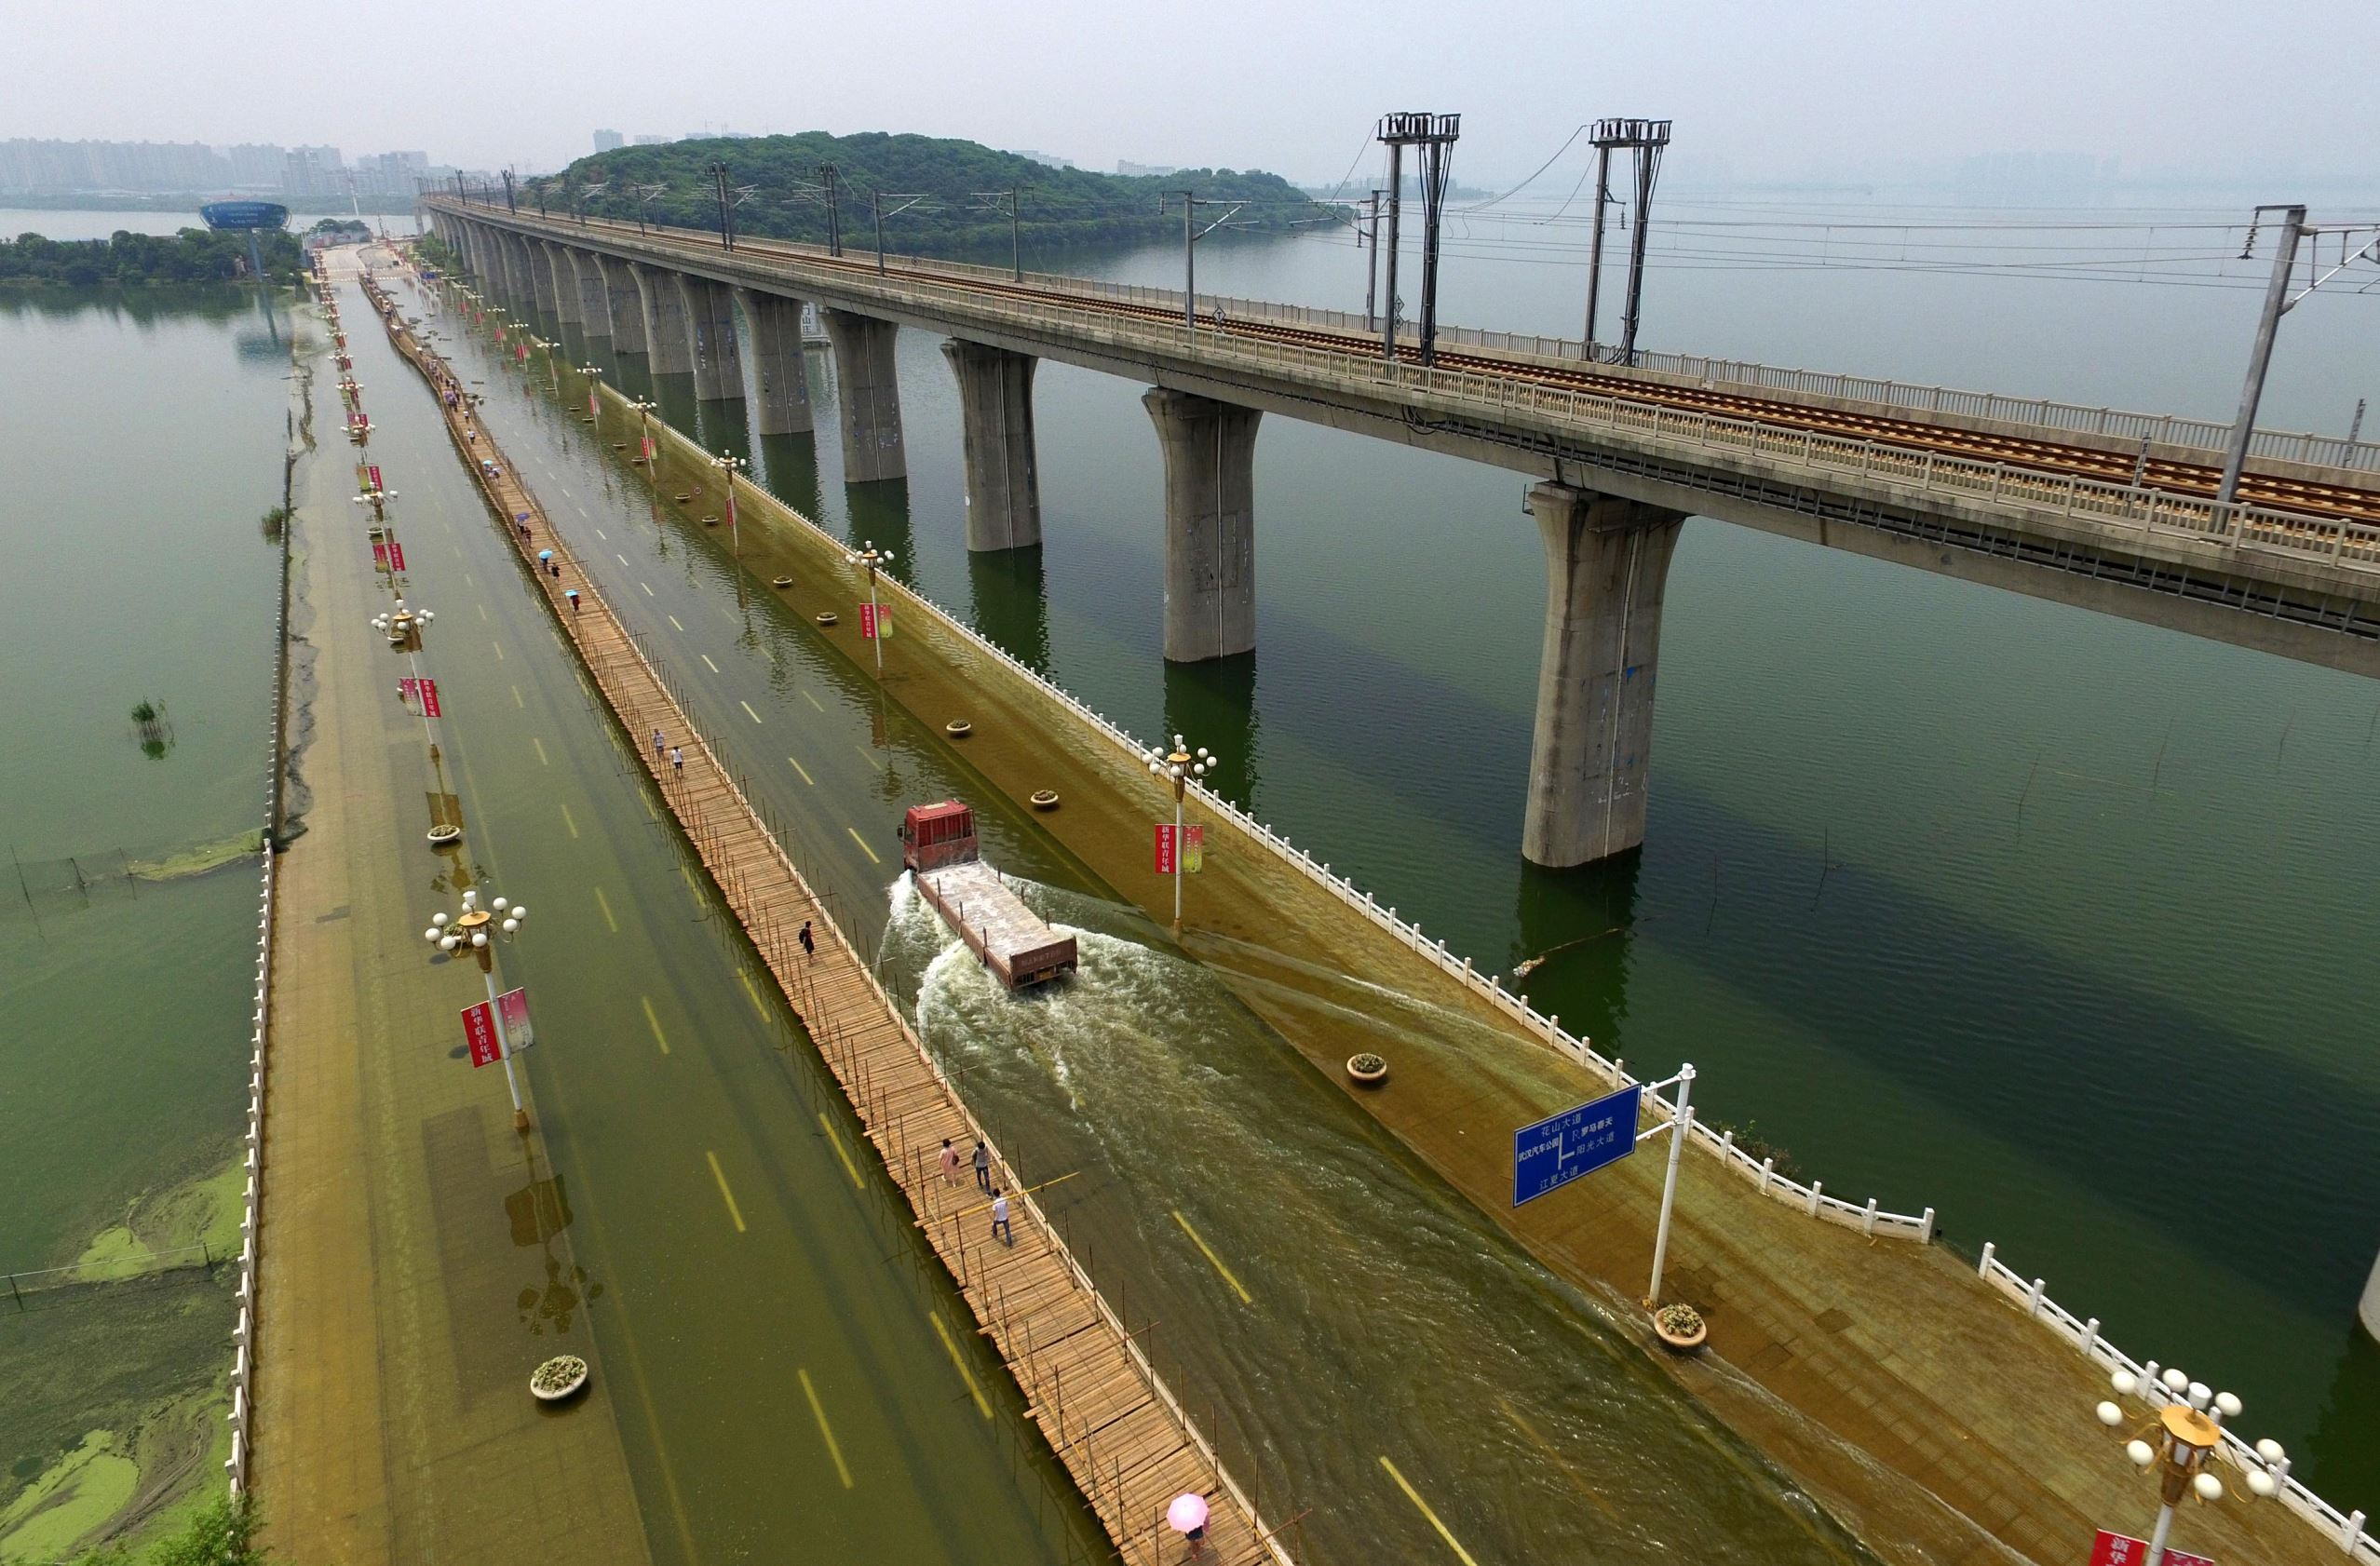 Слайд 64 из 86: Flooding in China - 12 Jul 2016 A temporary boardwalk built on a waterlogged bridge in Wuhan, central China's Hubei Province. A boardwalk was built on a 1400-meter-long bridge submerged by rising water at the Tangxun Lake in Wuhan.